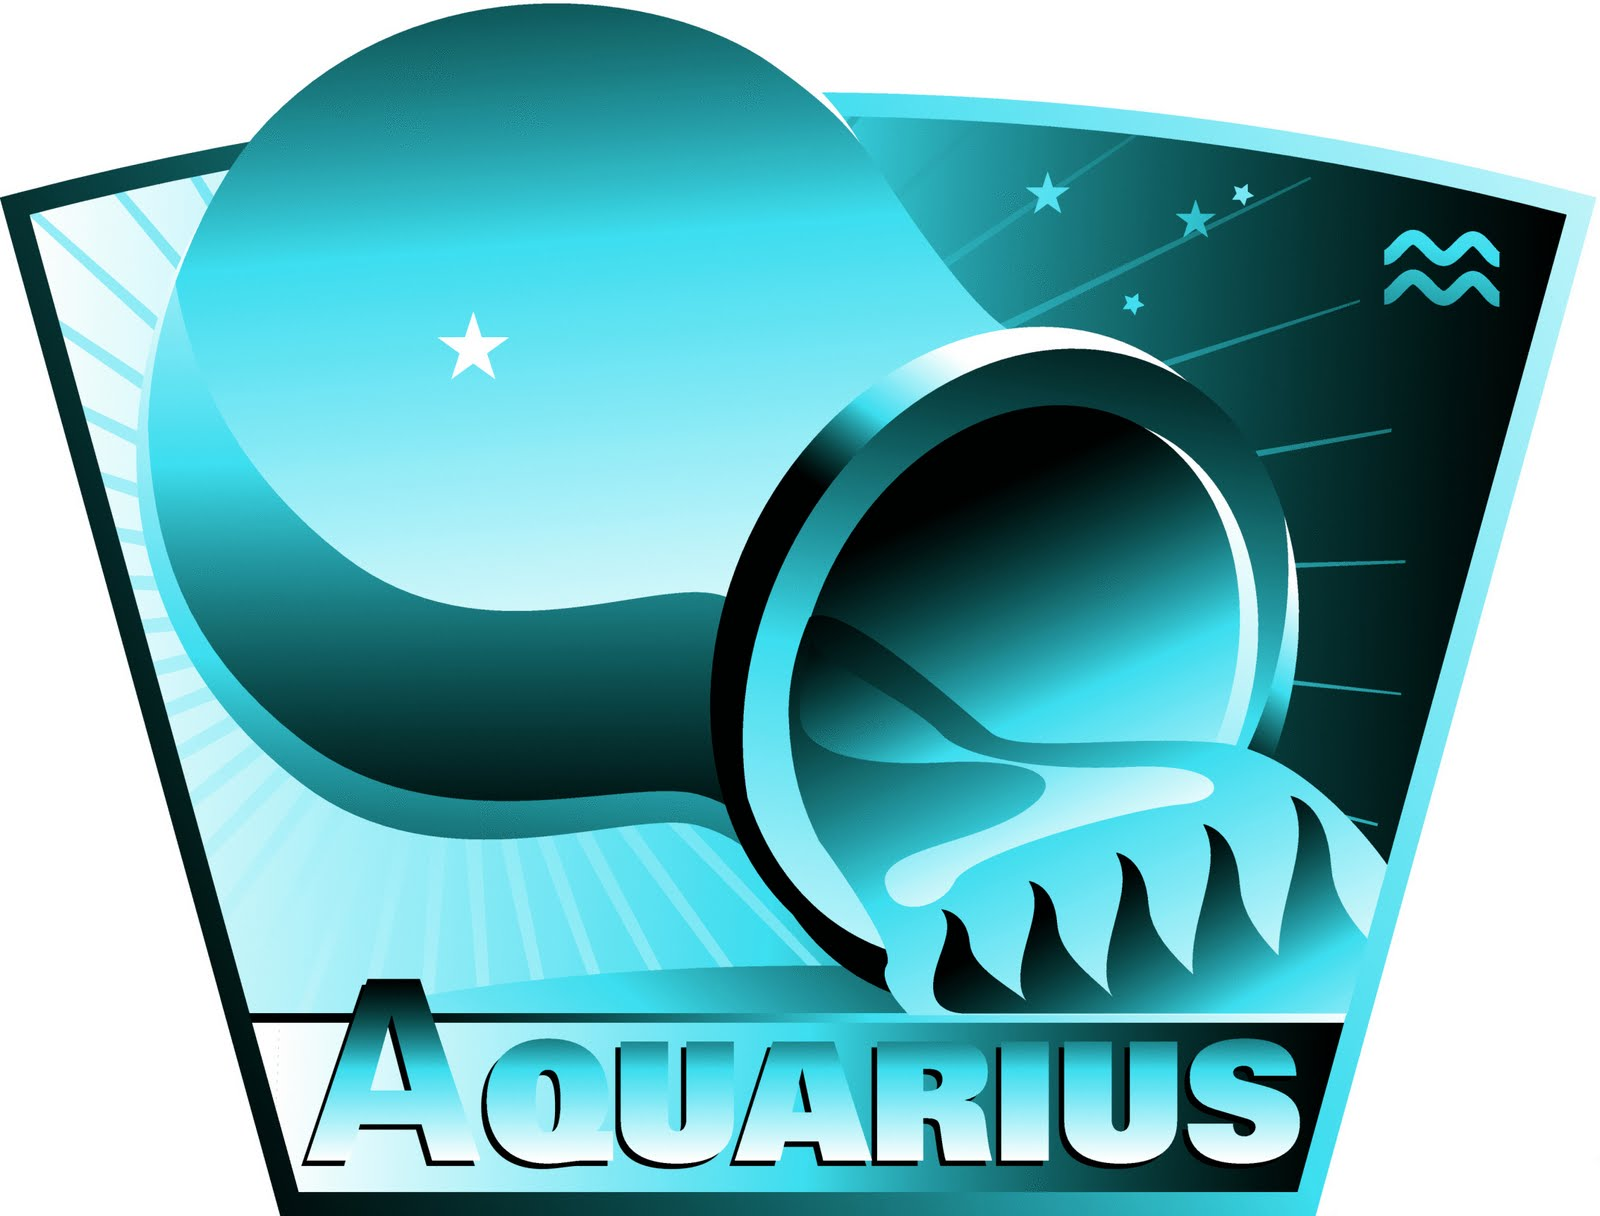 Aquarius zodiac career Aquarius zodiac career life